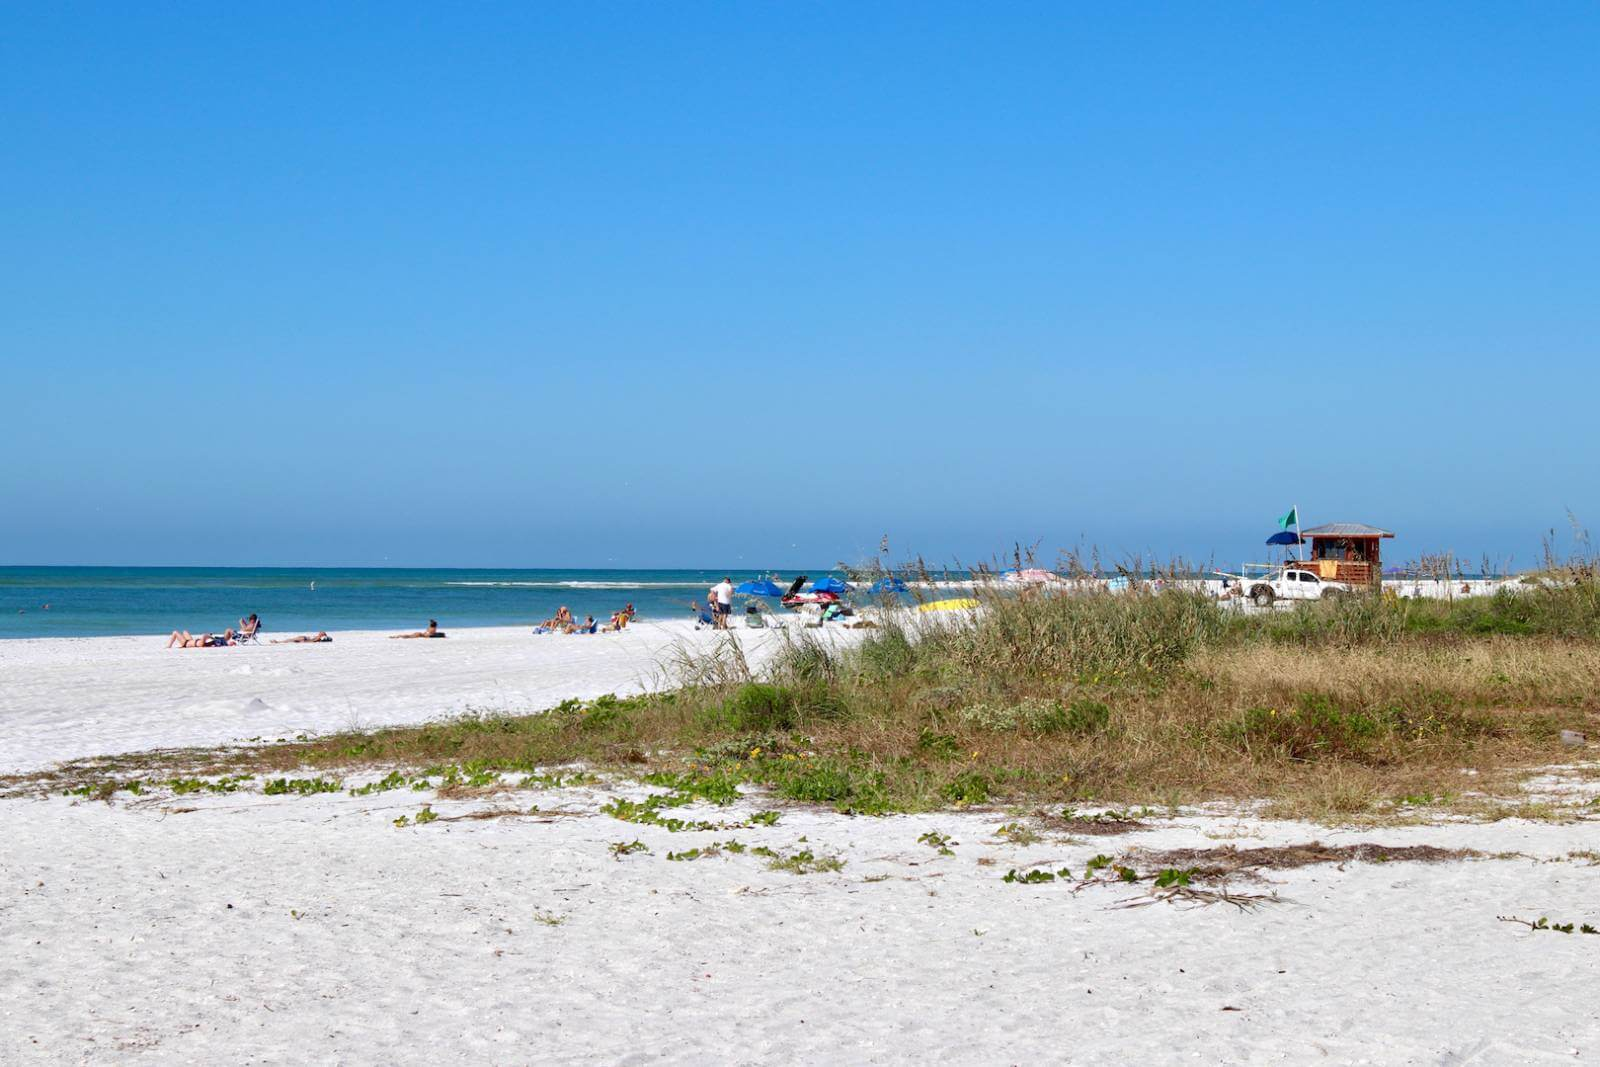 "Lido Beach in Sarasota, Florida. Lido Key was indirectly named by Sarasota resident John Ringling. A fan of Italian culture, he referred to the key's beach as a lido which means ""shore"" in Italian. The name Lido Key stuck."